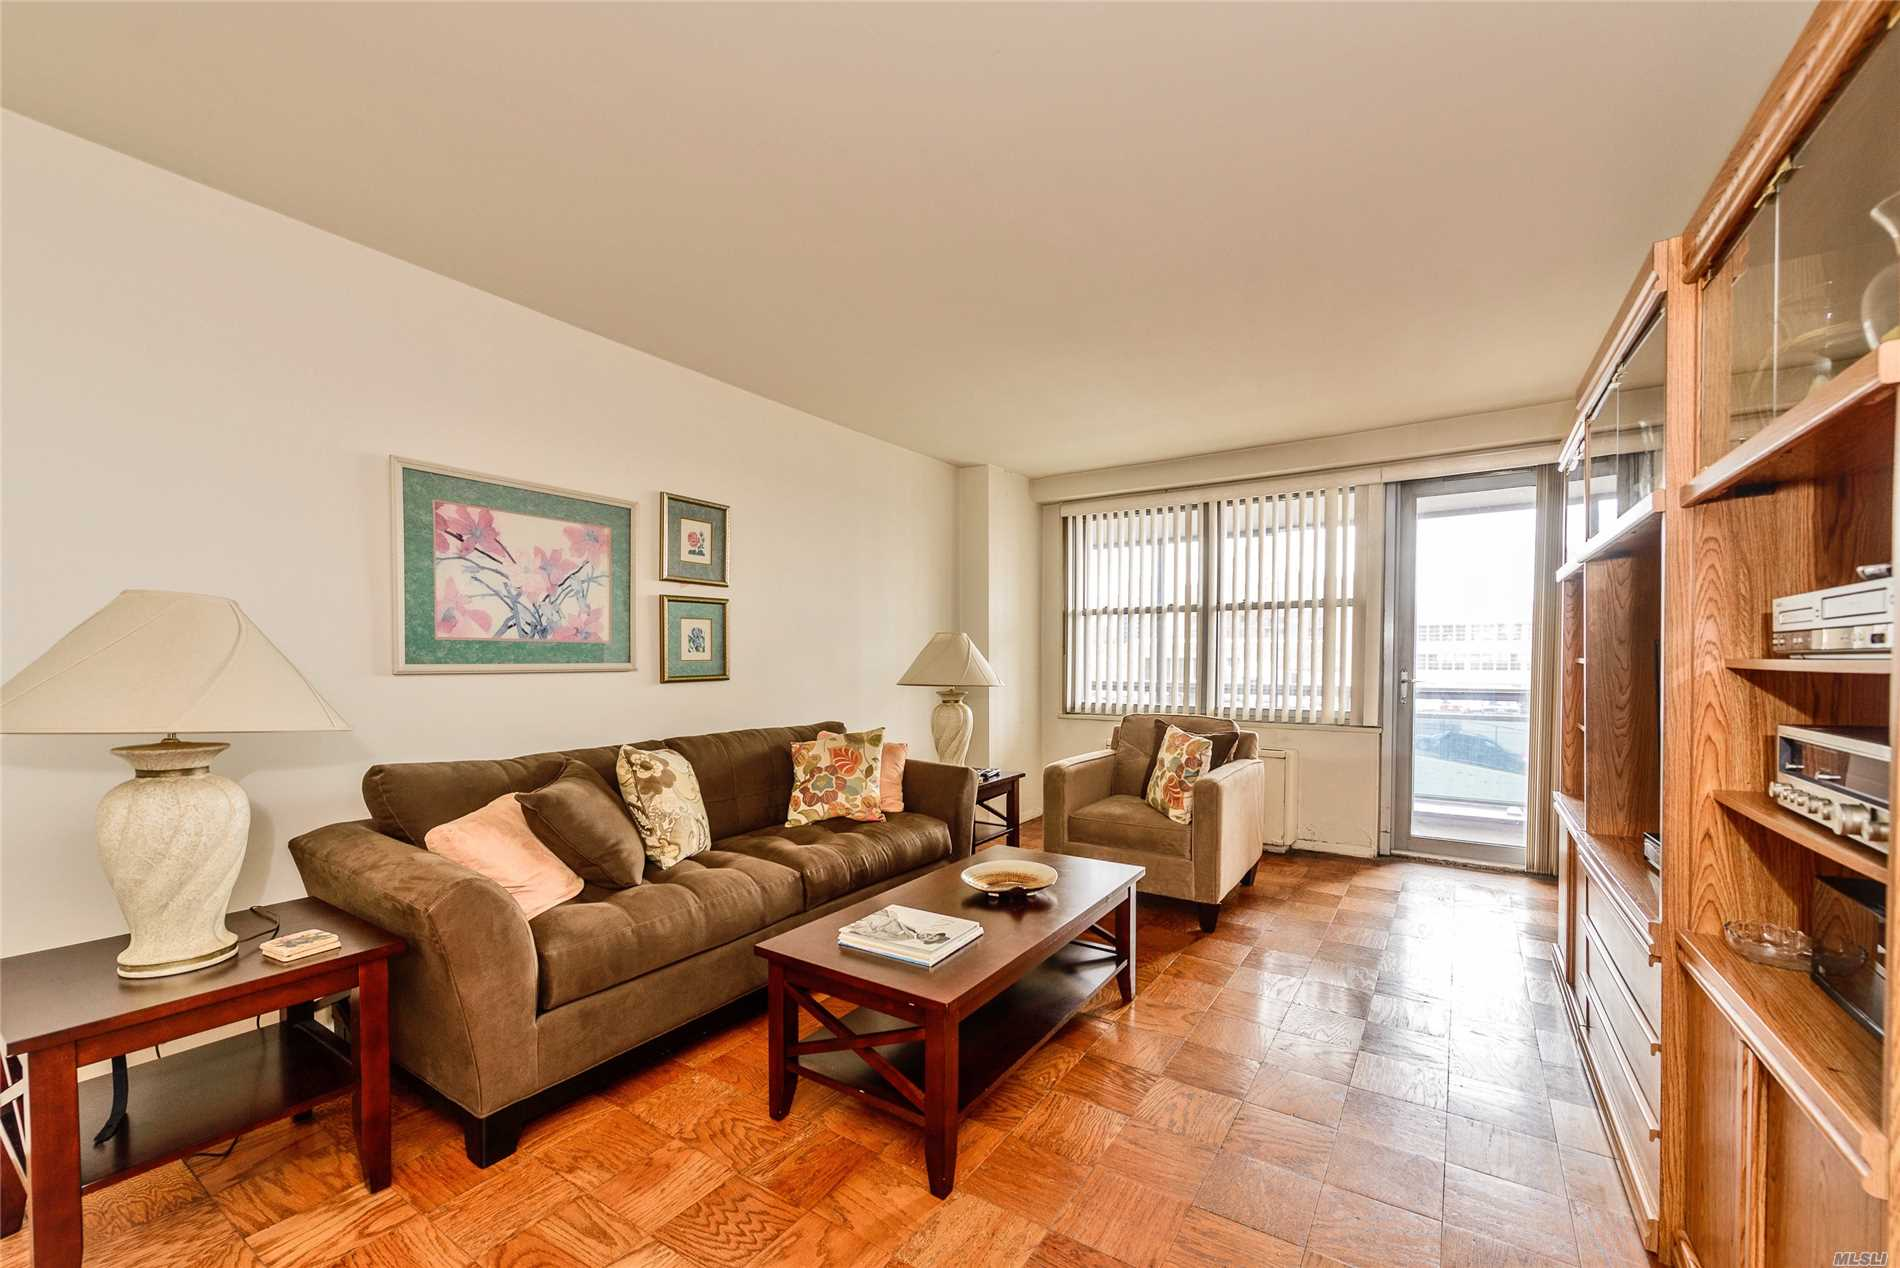 Spacious Full 1 Br With Terrace Facing East In In A Cat Friendly Building. Gerard Towers Is A 25 Story Fire Proof High-Rise Building Located Around The Corner From Trendy Austin Street. The Building Offers A 24 Hour Doorman, Seasonal Heated Pool, Fitness Center,  Children's Play Room, Bike & Storage Rooms As Well As Immediate Valet Parking. Just Steps To Express E & F Trains, The Long Island Railroad, Restaurants, Bakeries, Boutique Shops Movie Theaters And So Much More!